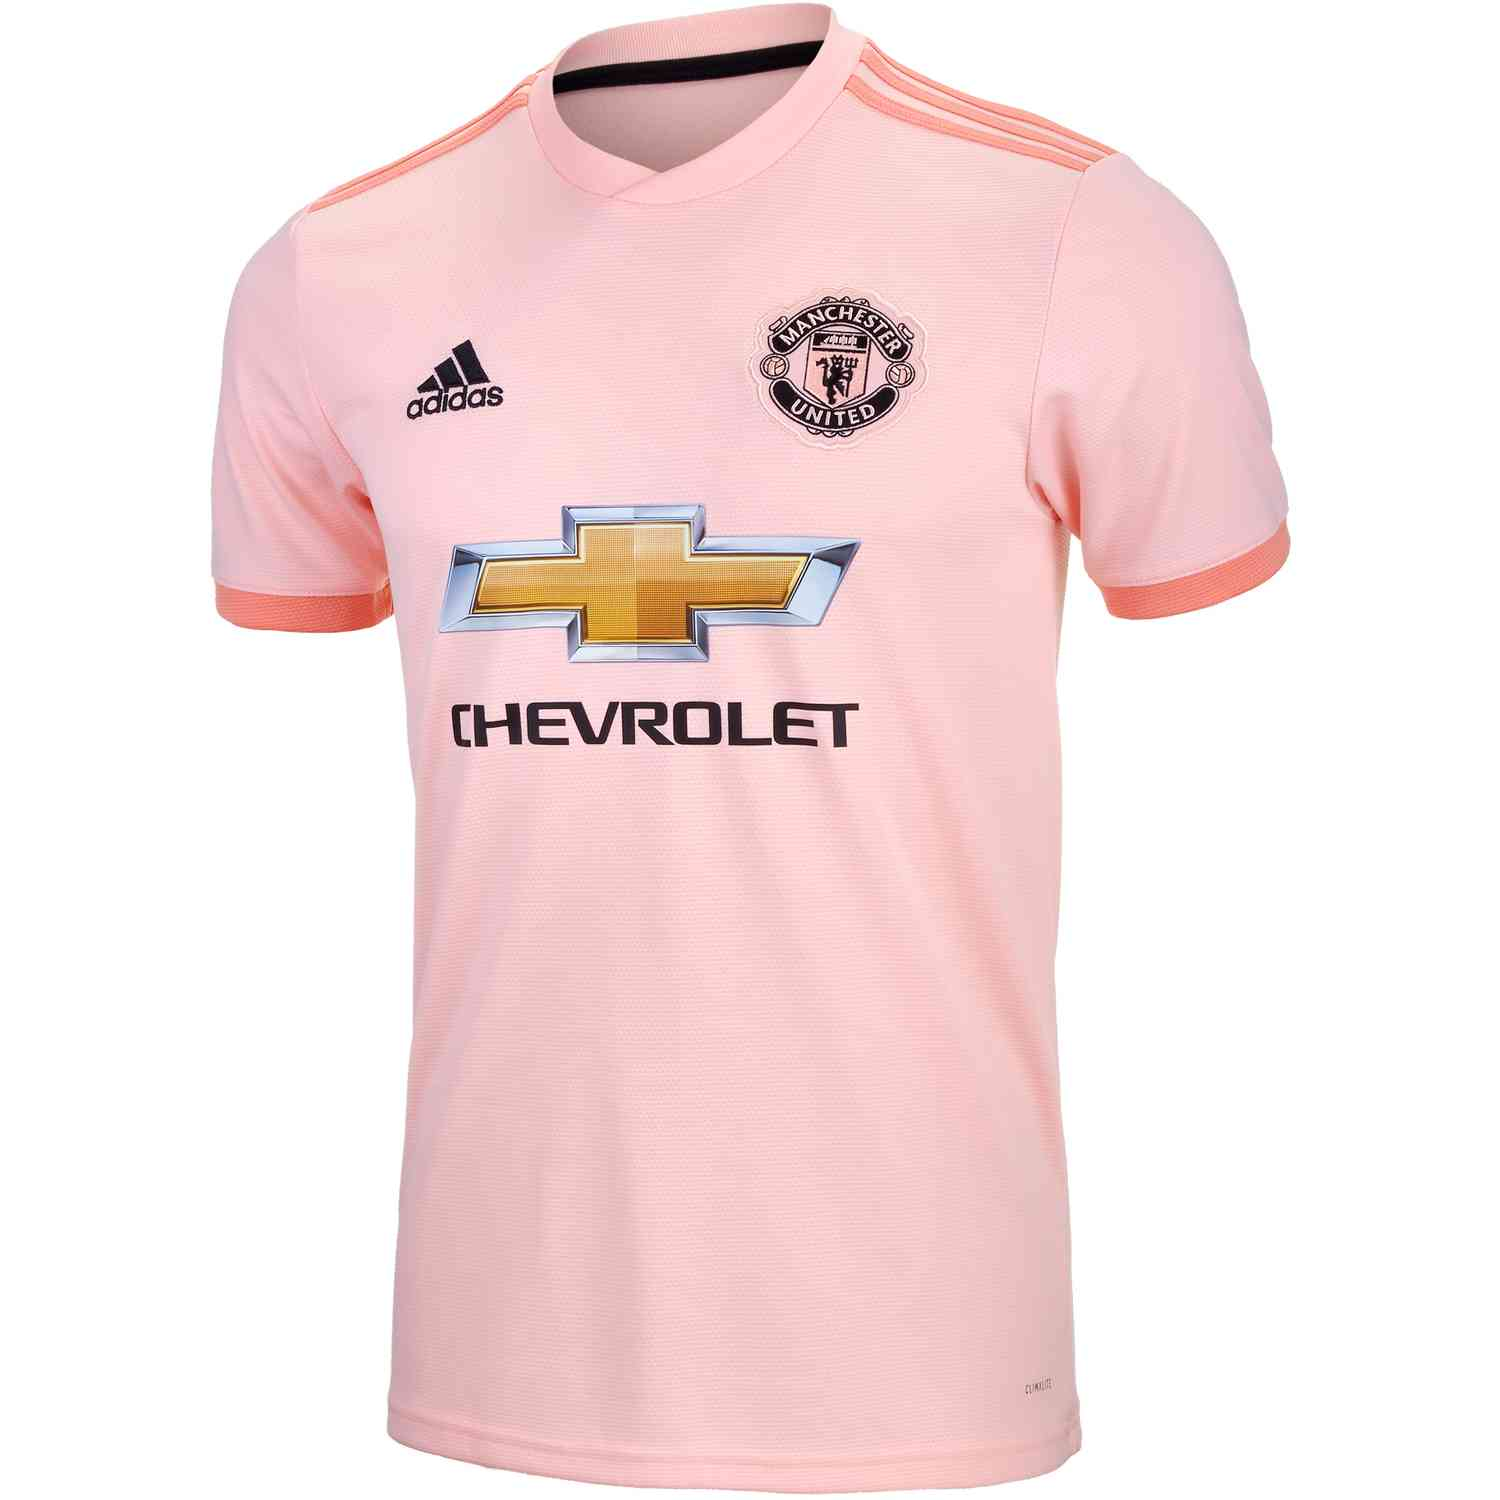 2018-19 Kids adidas Manchester United Away Jersey - Soccer Master